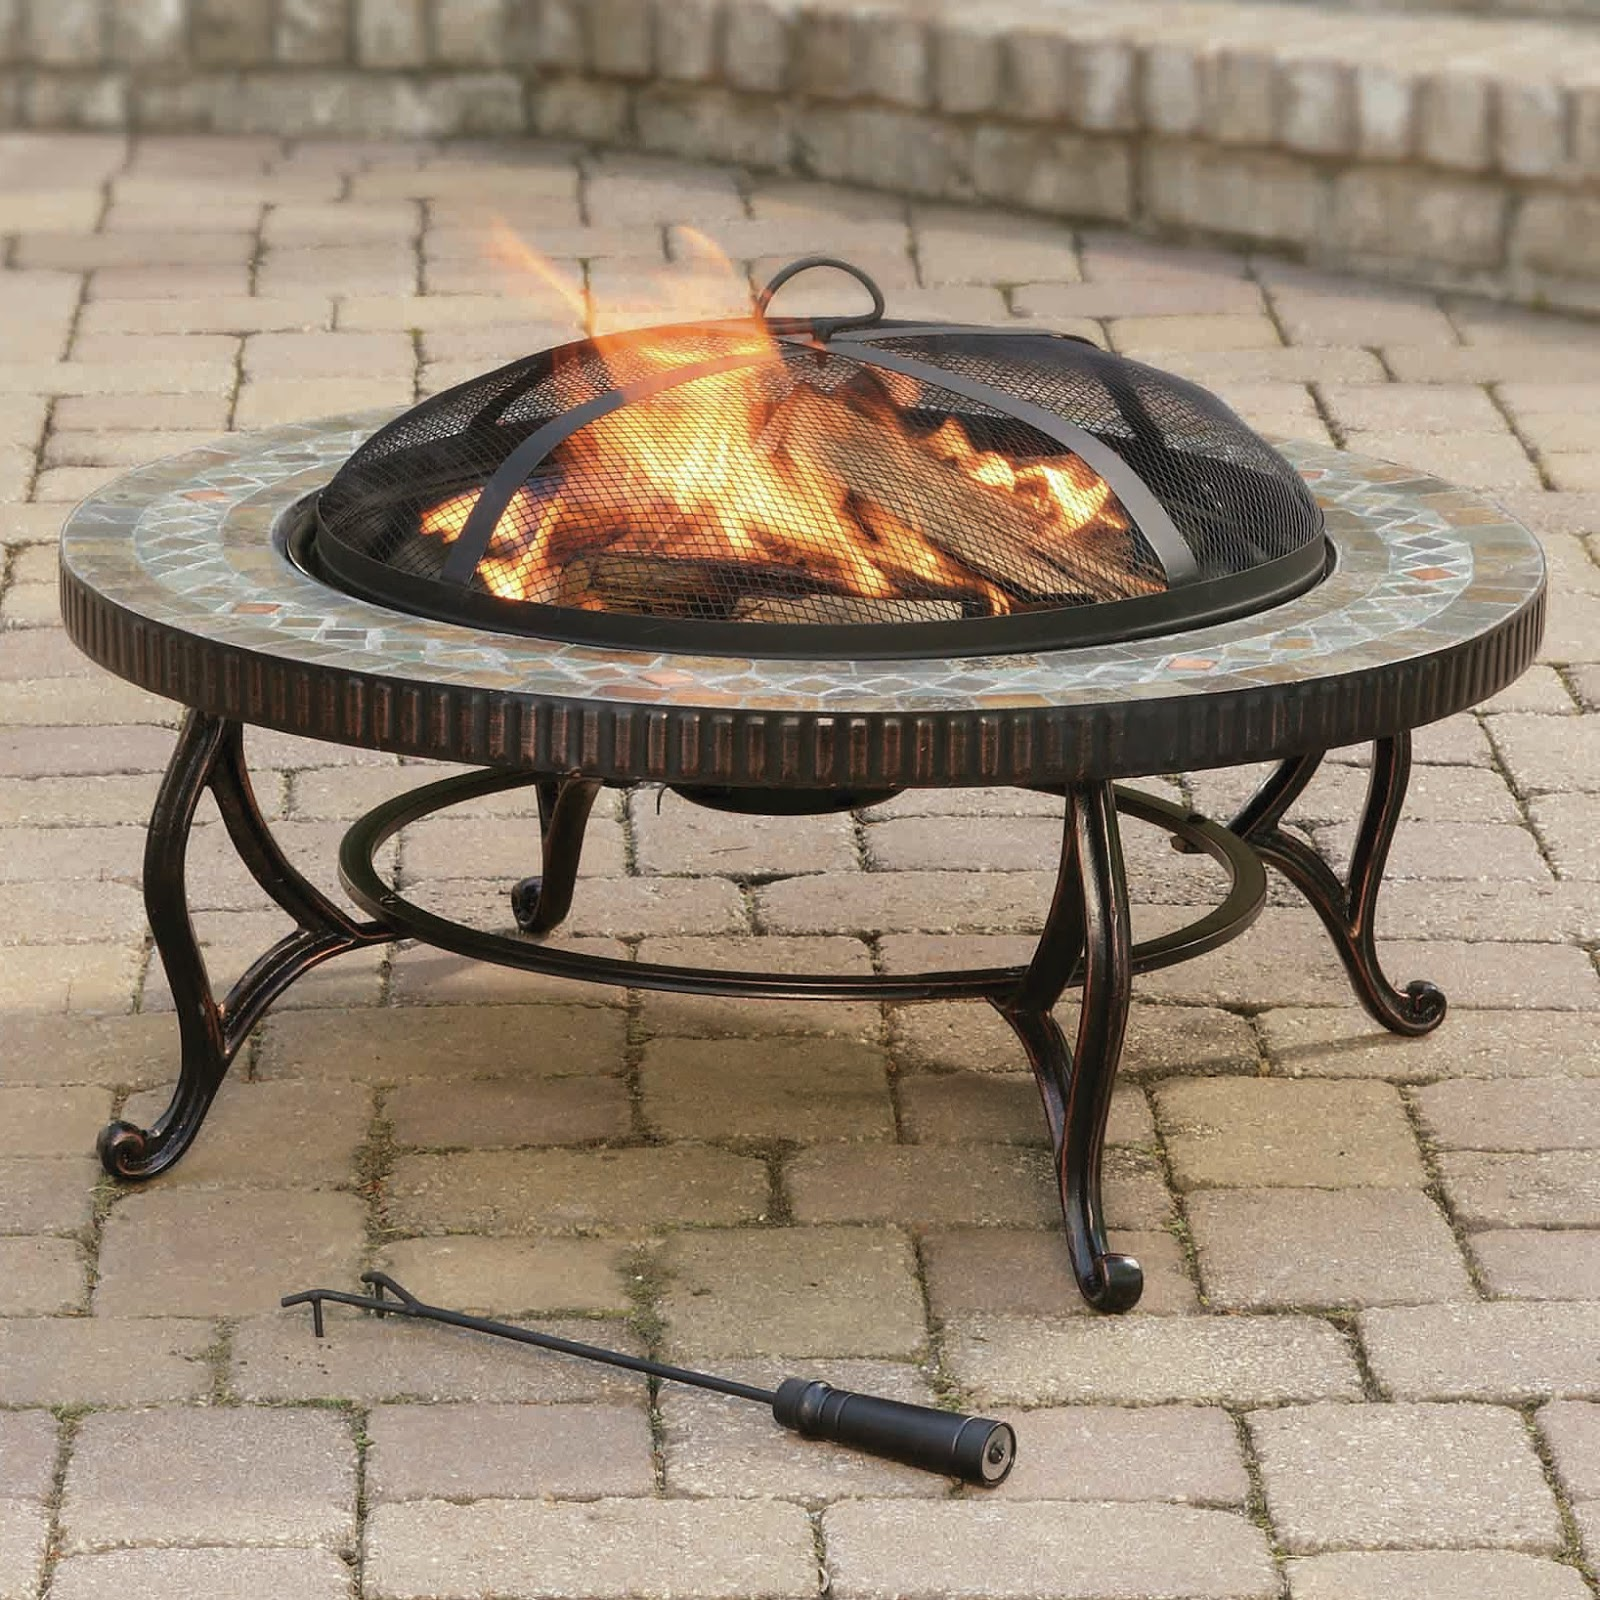 Backyard Fire Pit Laws : Georges County FireEMS Department Updated Law Concerning Fire Pits